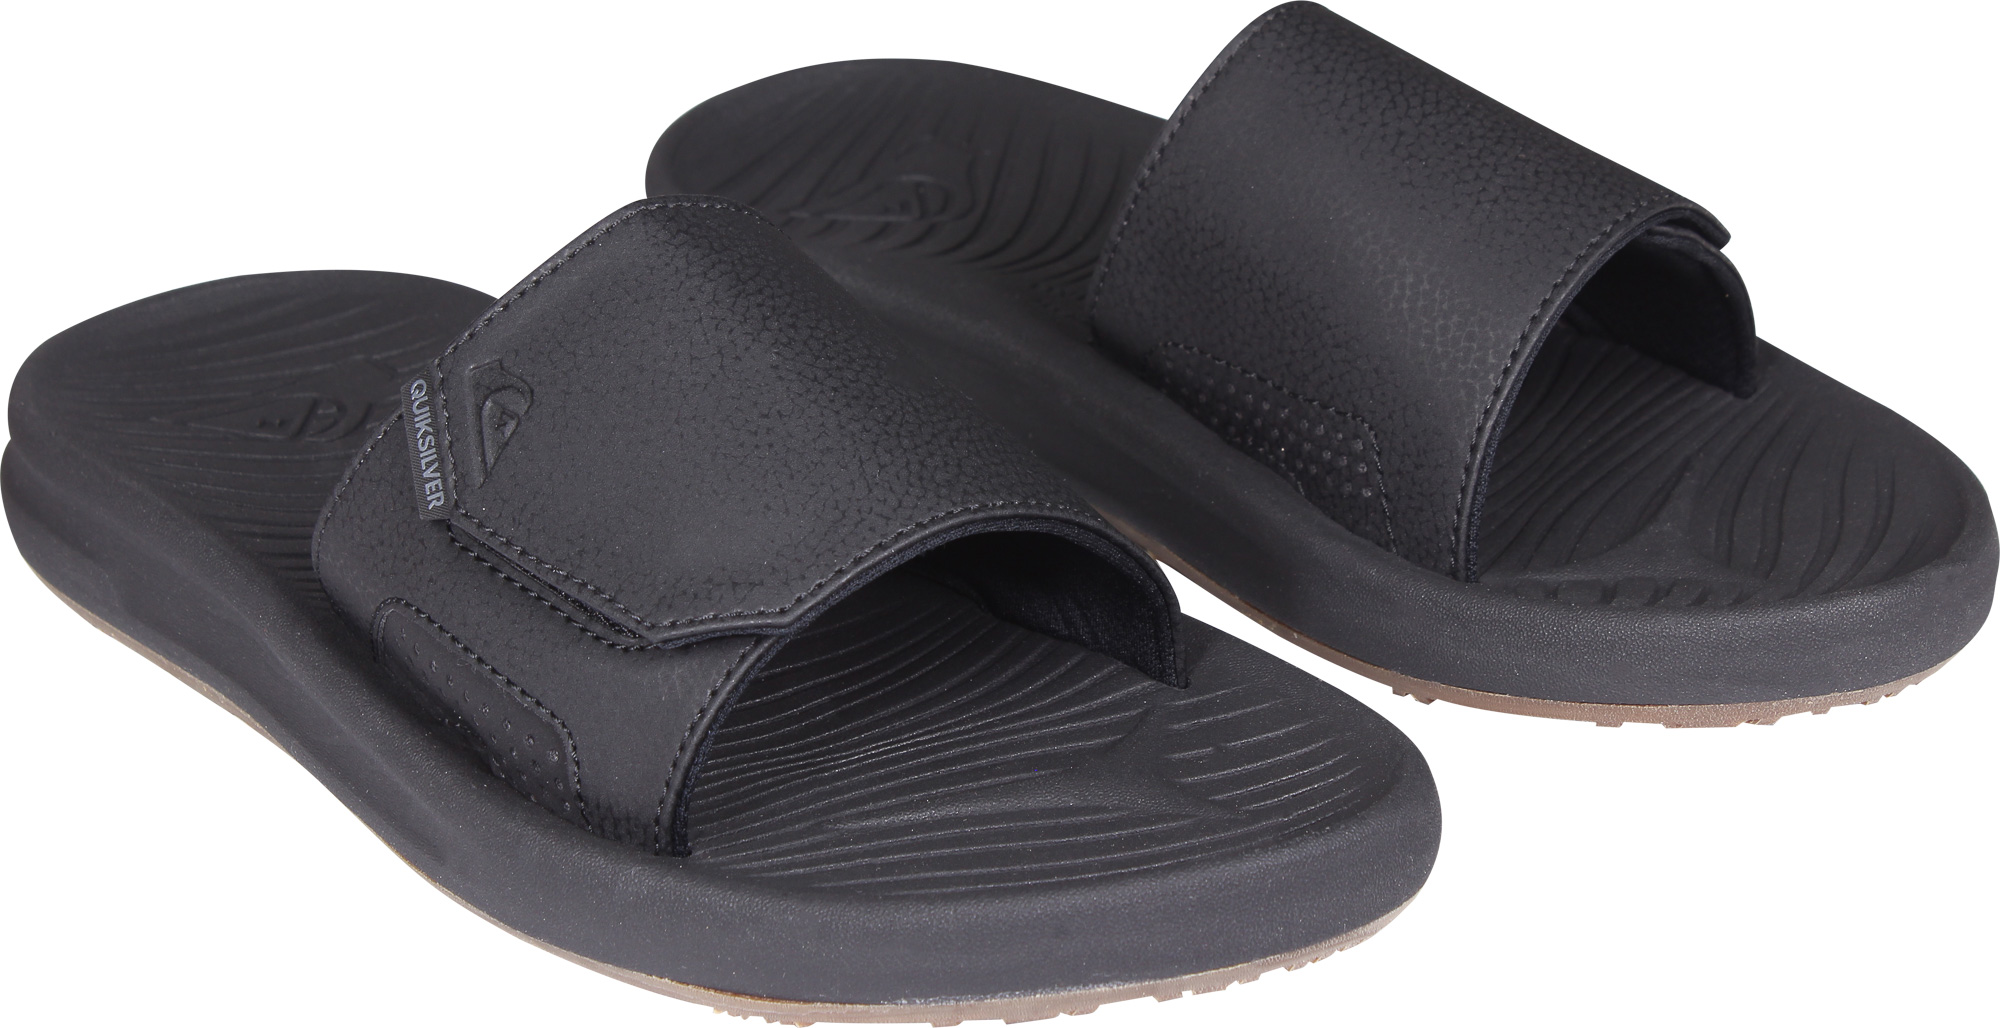 8182b7e93ab756 Quiksilver Mens Travel Oasis Slide Sandals - Black Brown